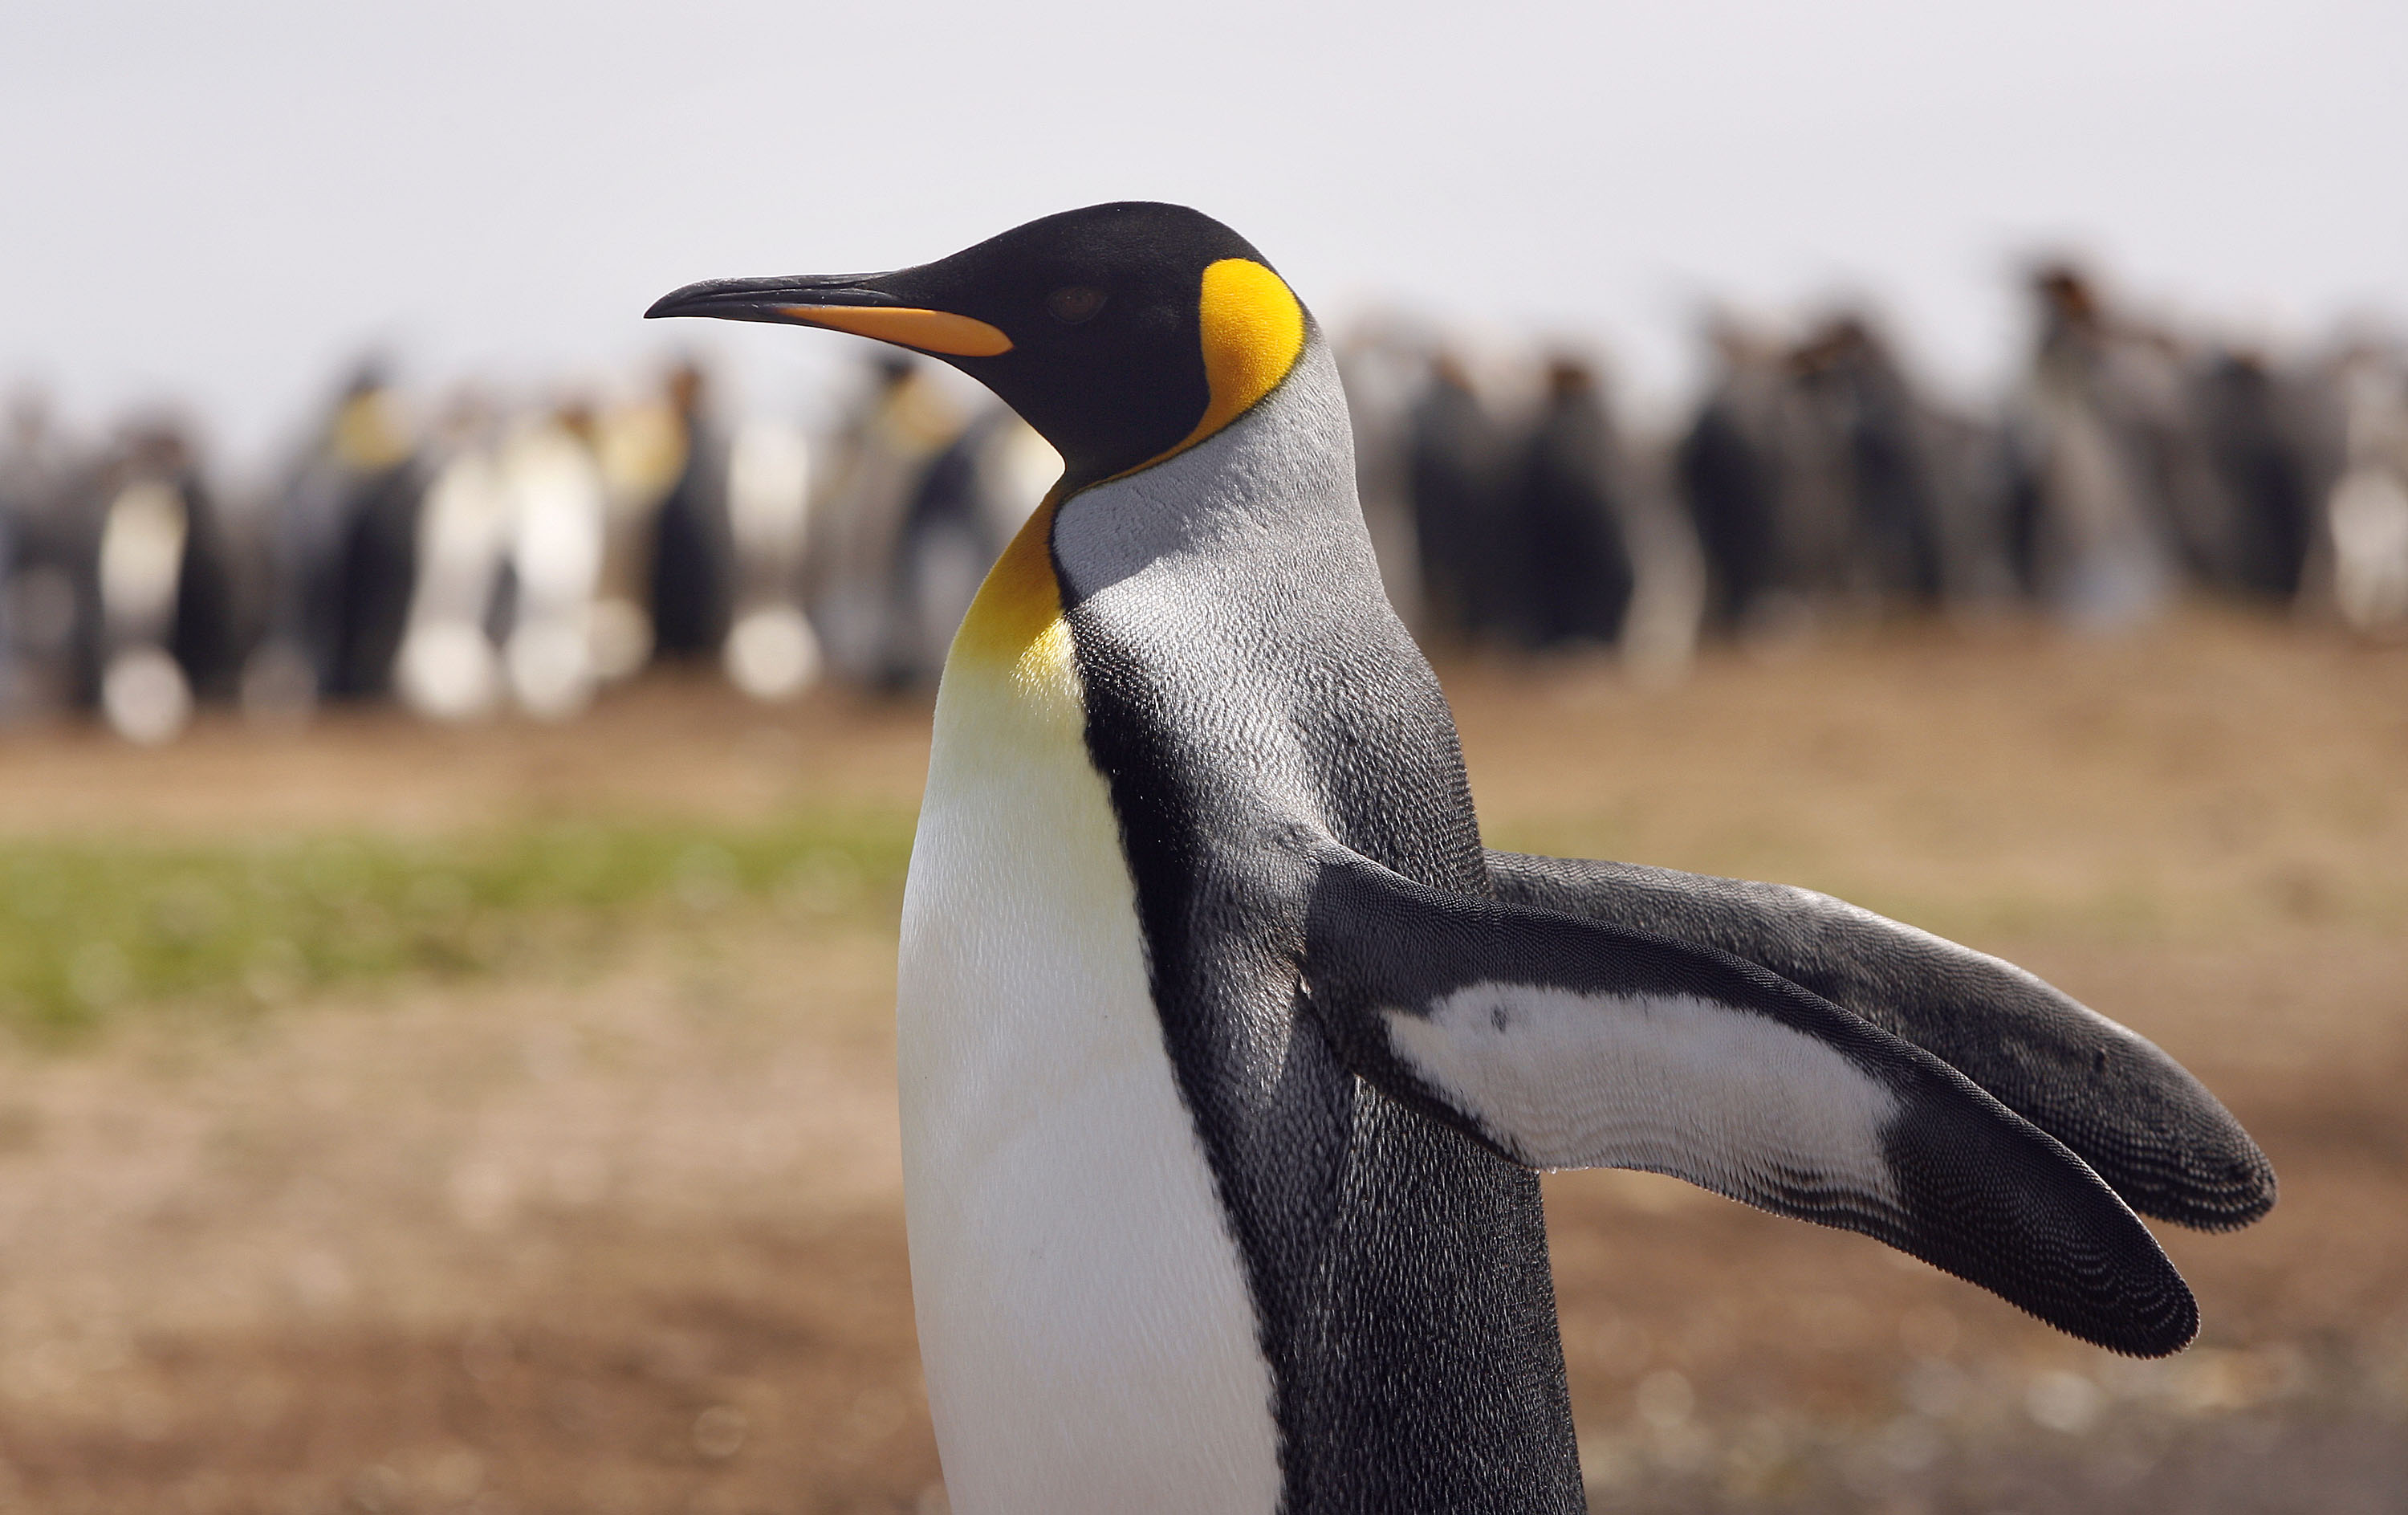 A King Penguin stretches it's wings at Volunteer Point, Falkland Islands on Feb. 5, 2007.